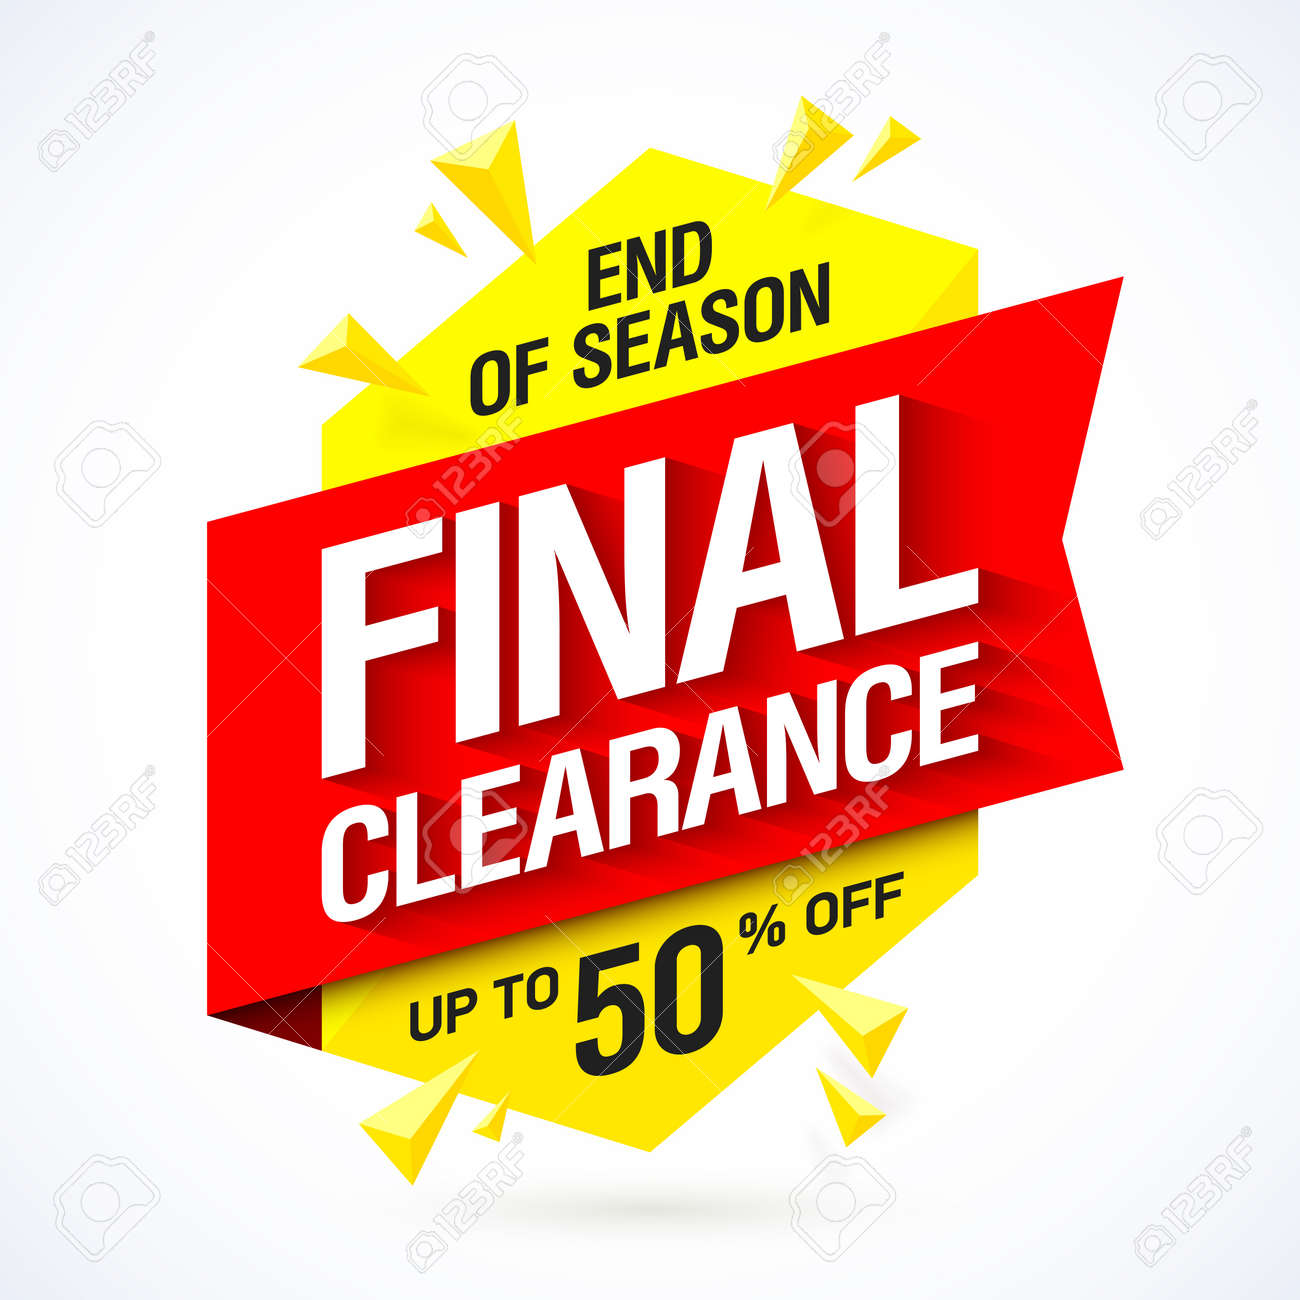 end of season final clearance sale banner design royalty free